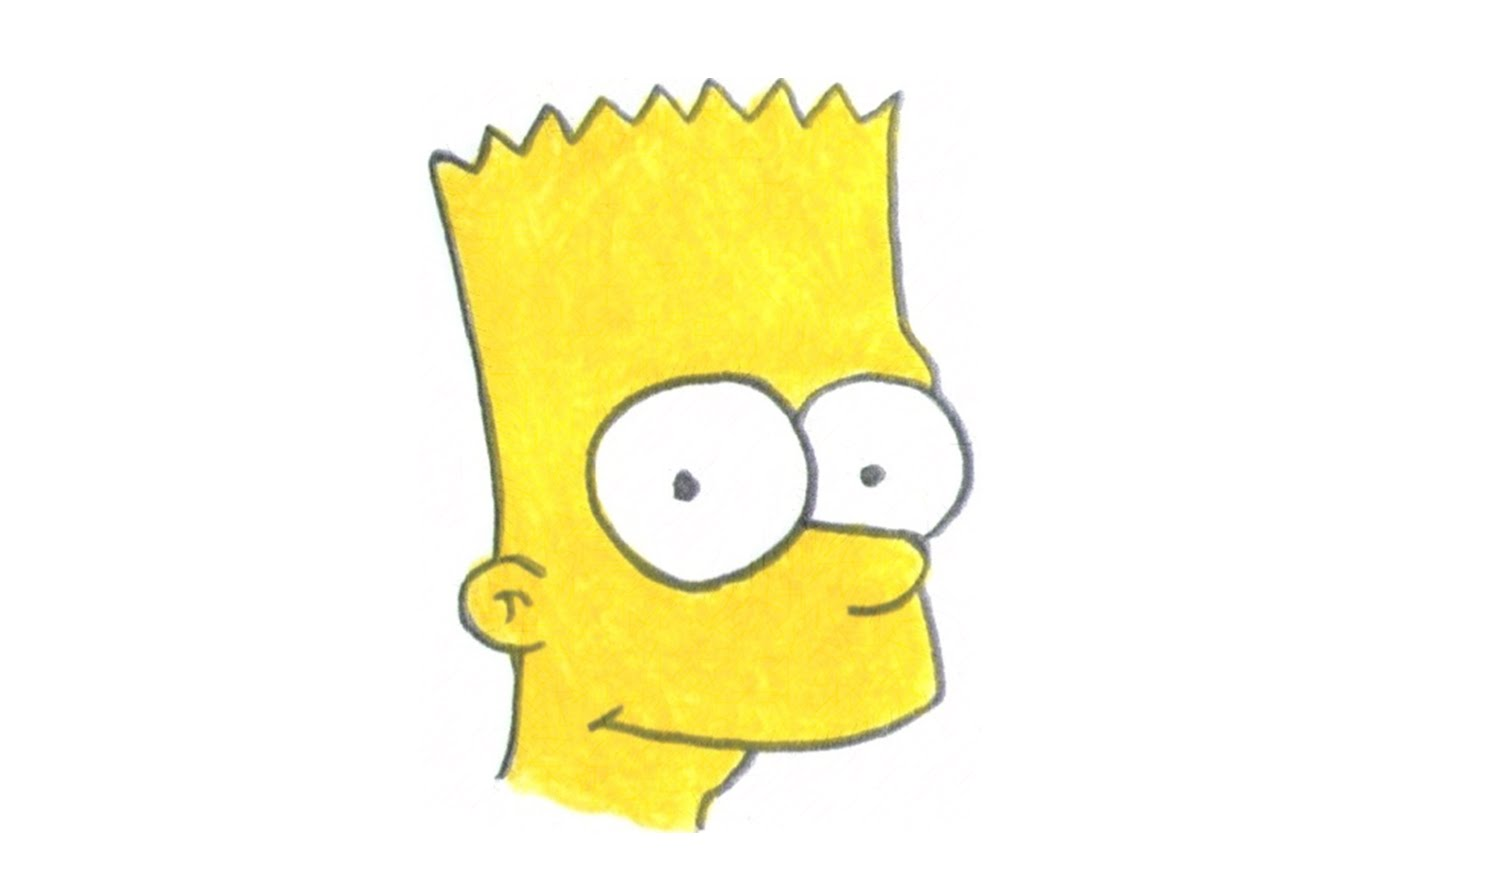 1500x886 How To Draw Bart Simpson From The Simpsons (Character)